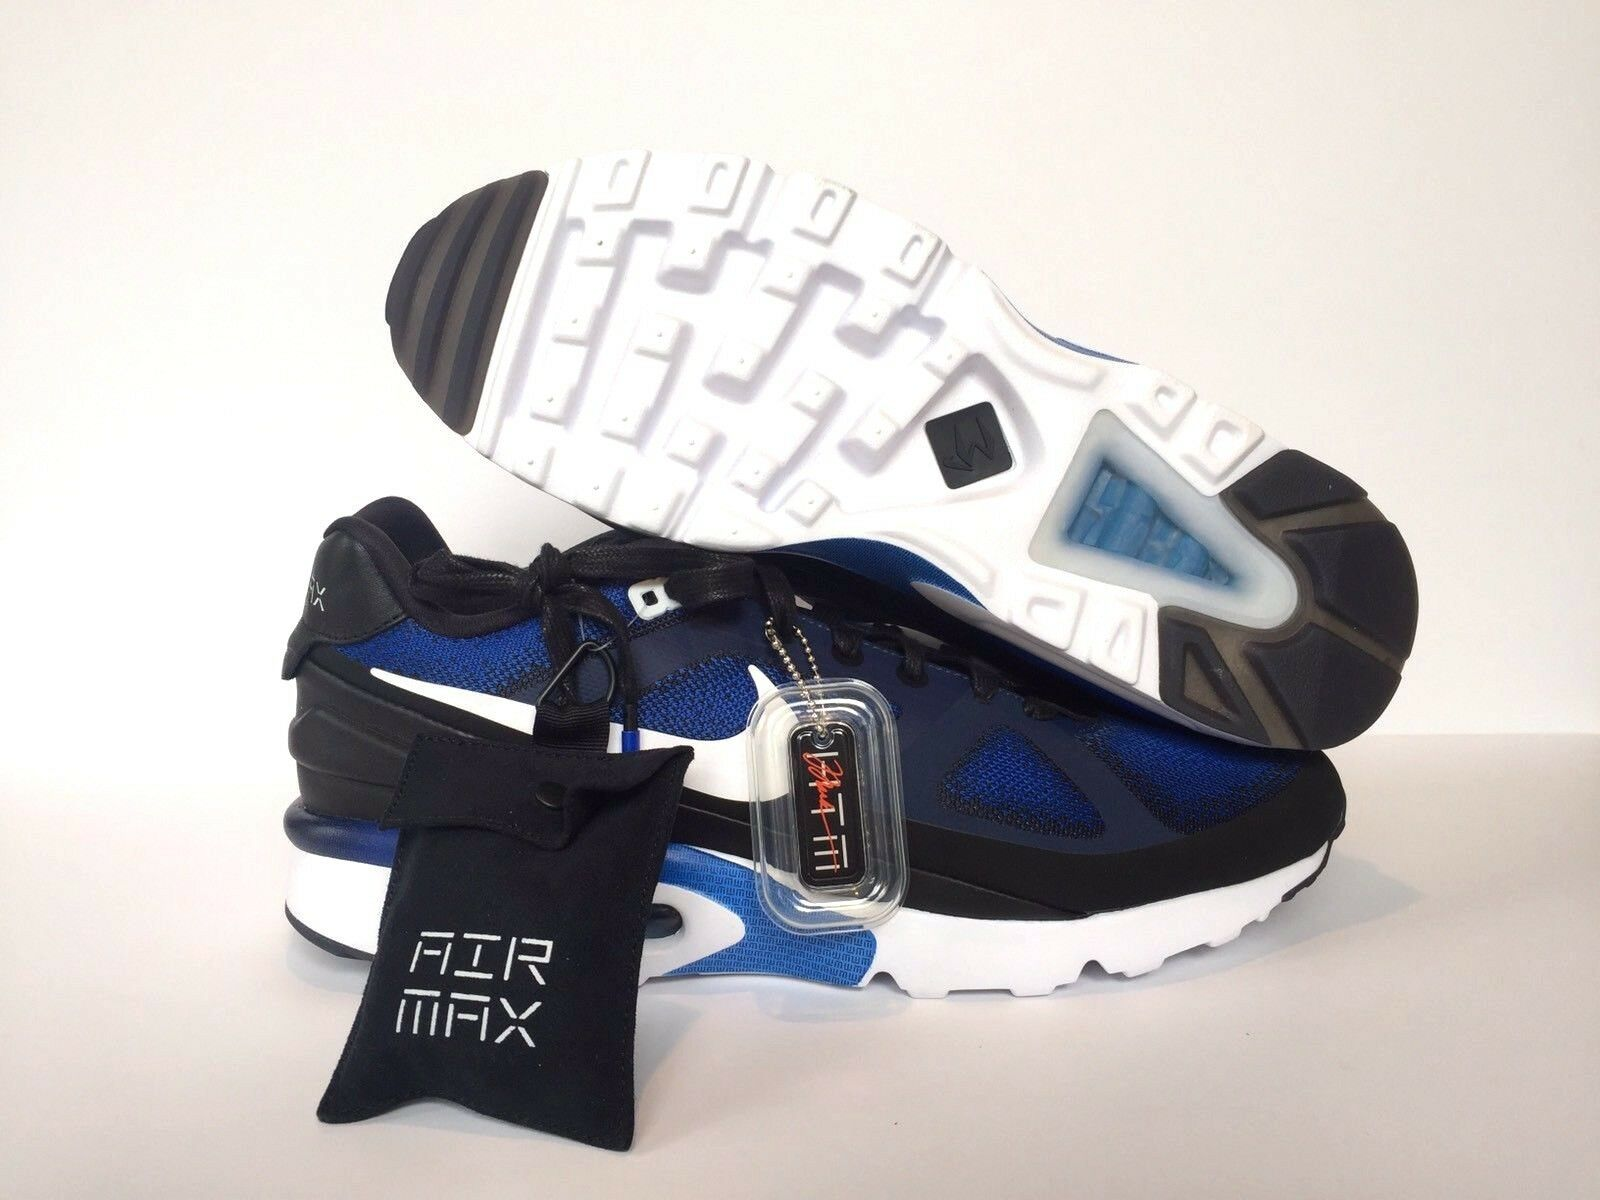 New der nike air max - mark parker us - 13 m / limited authentic 848625-401 100%